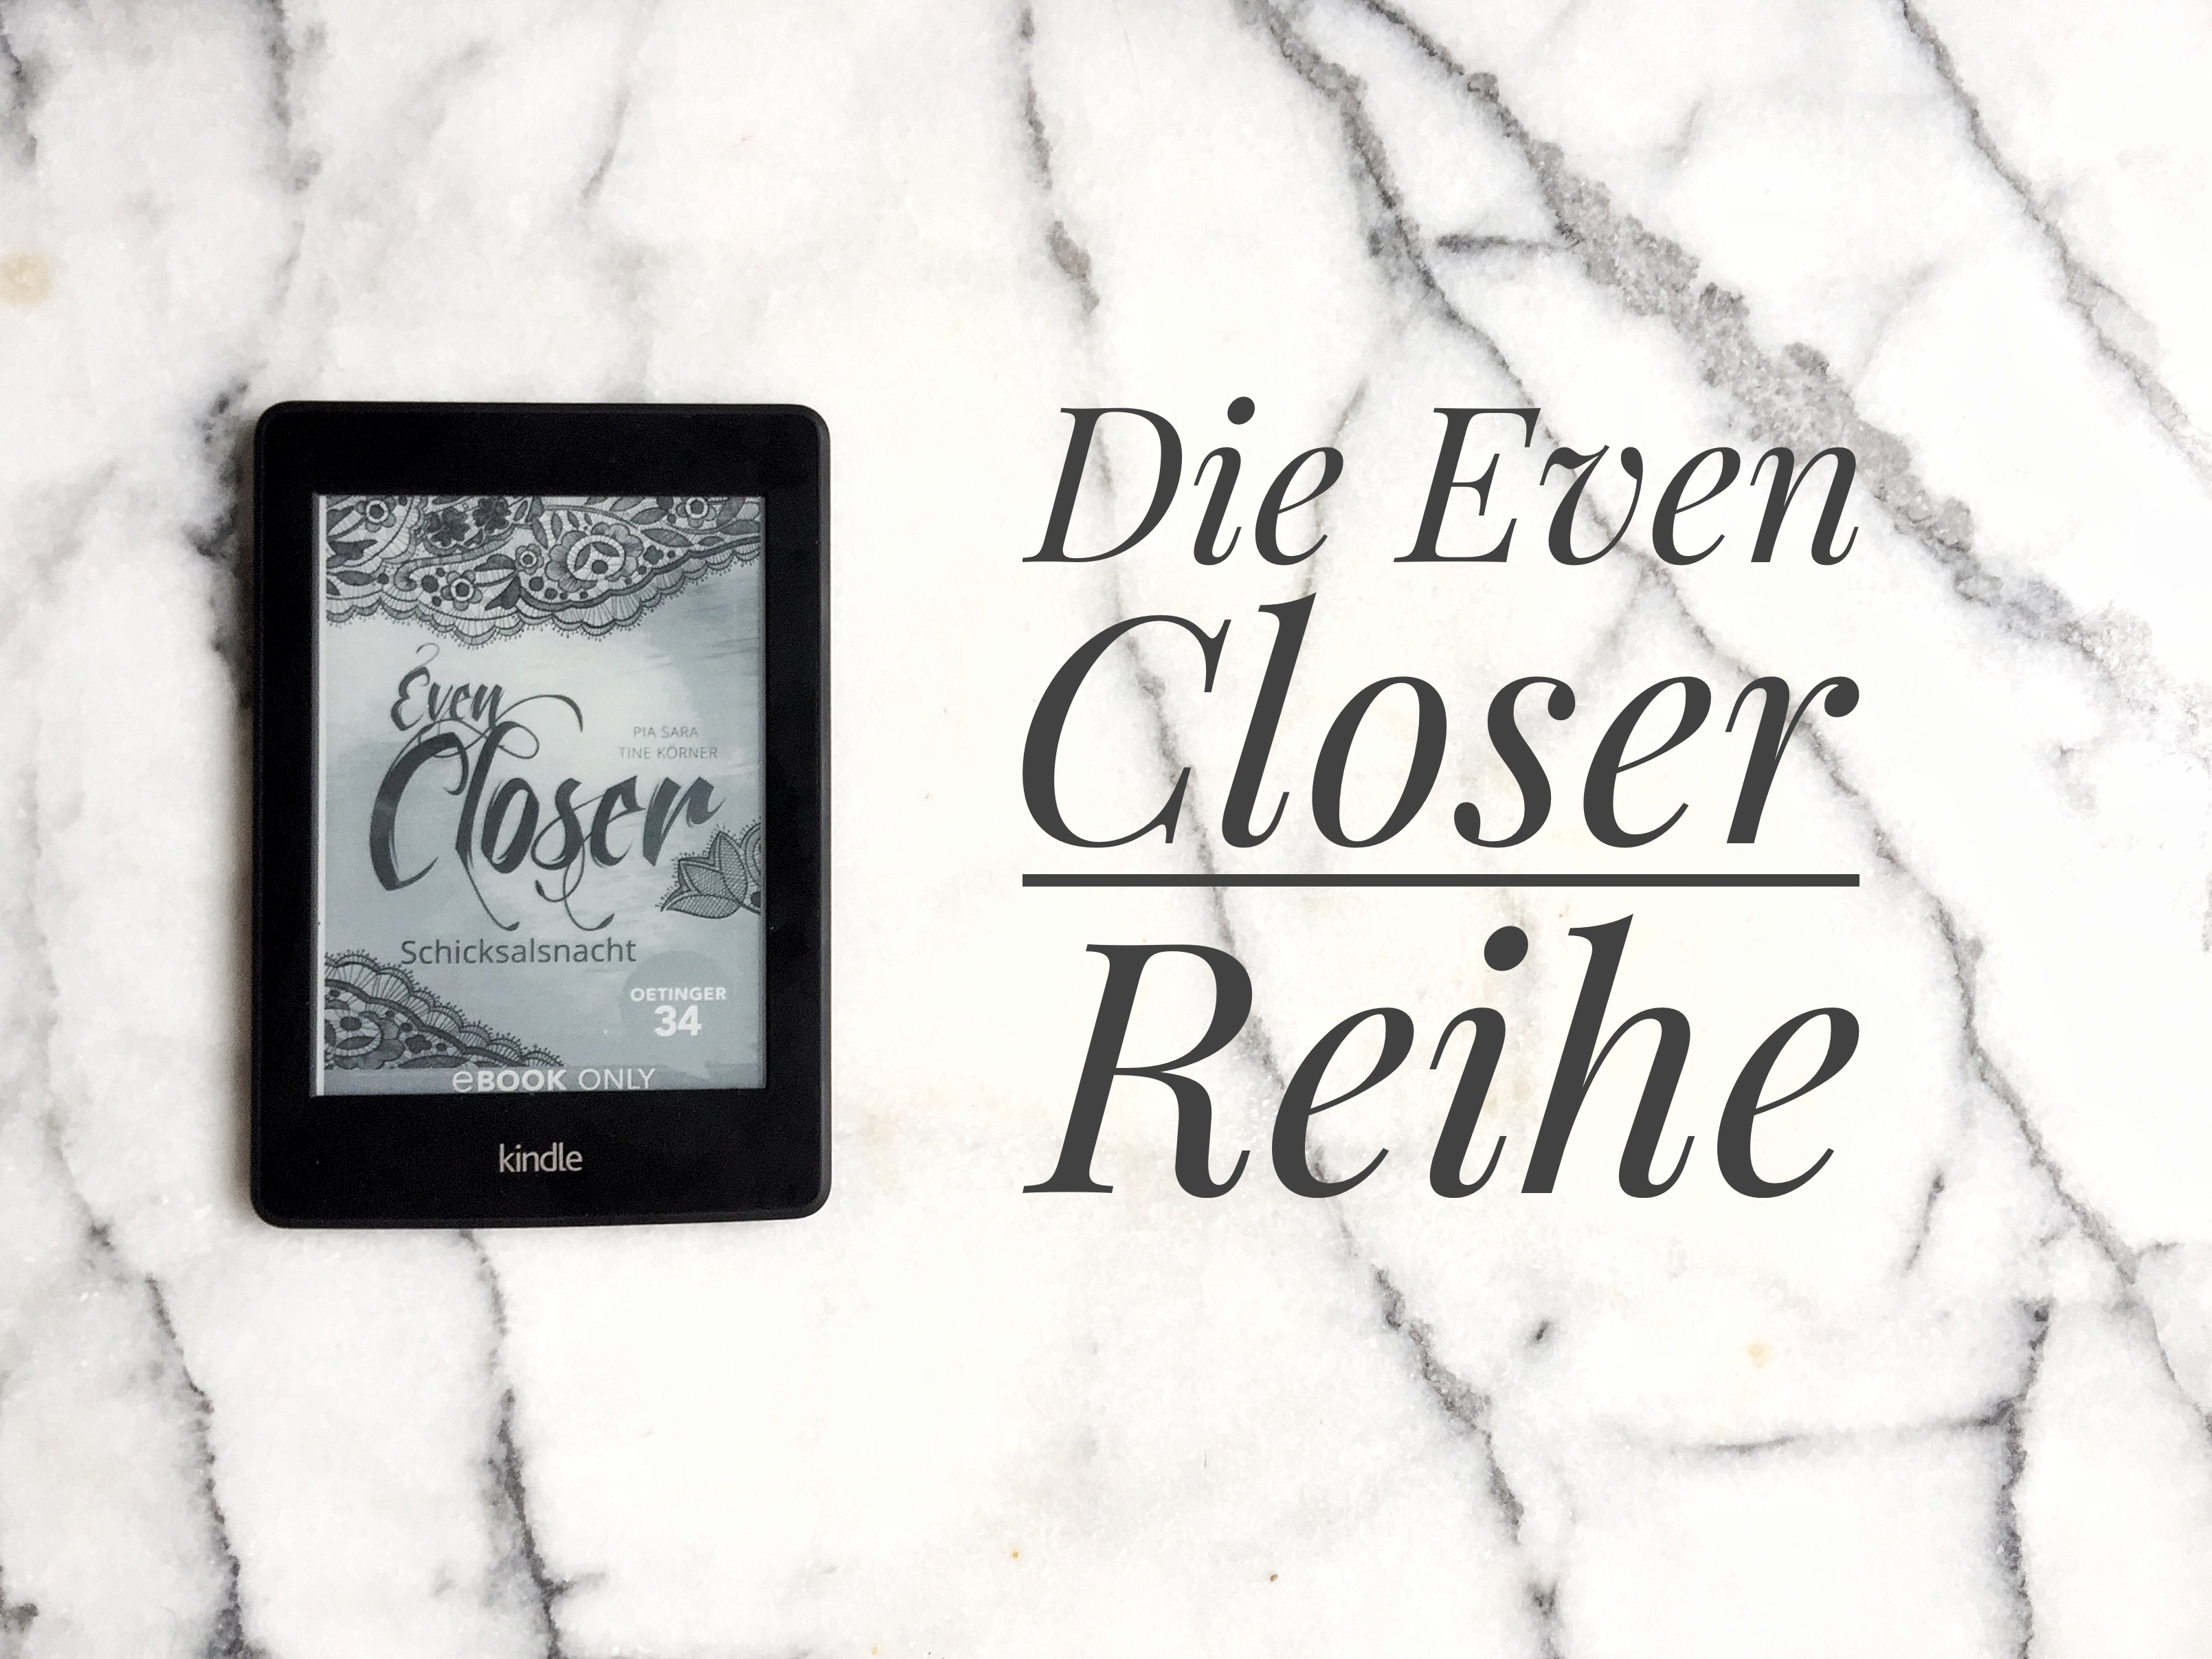 Even Closer Oetinger34